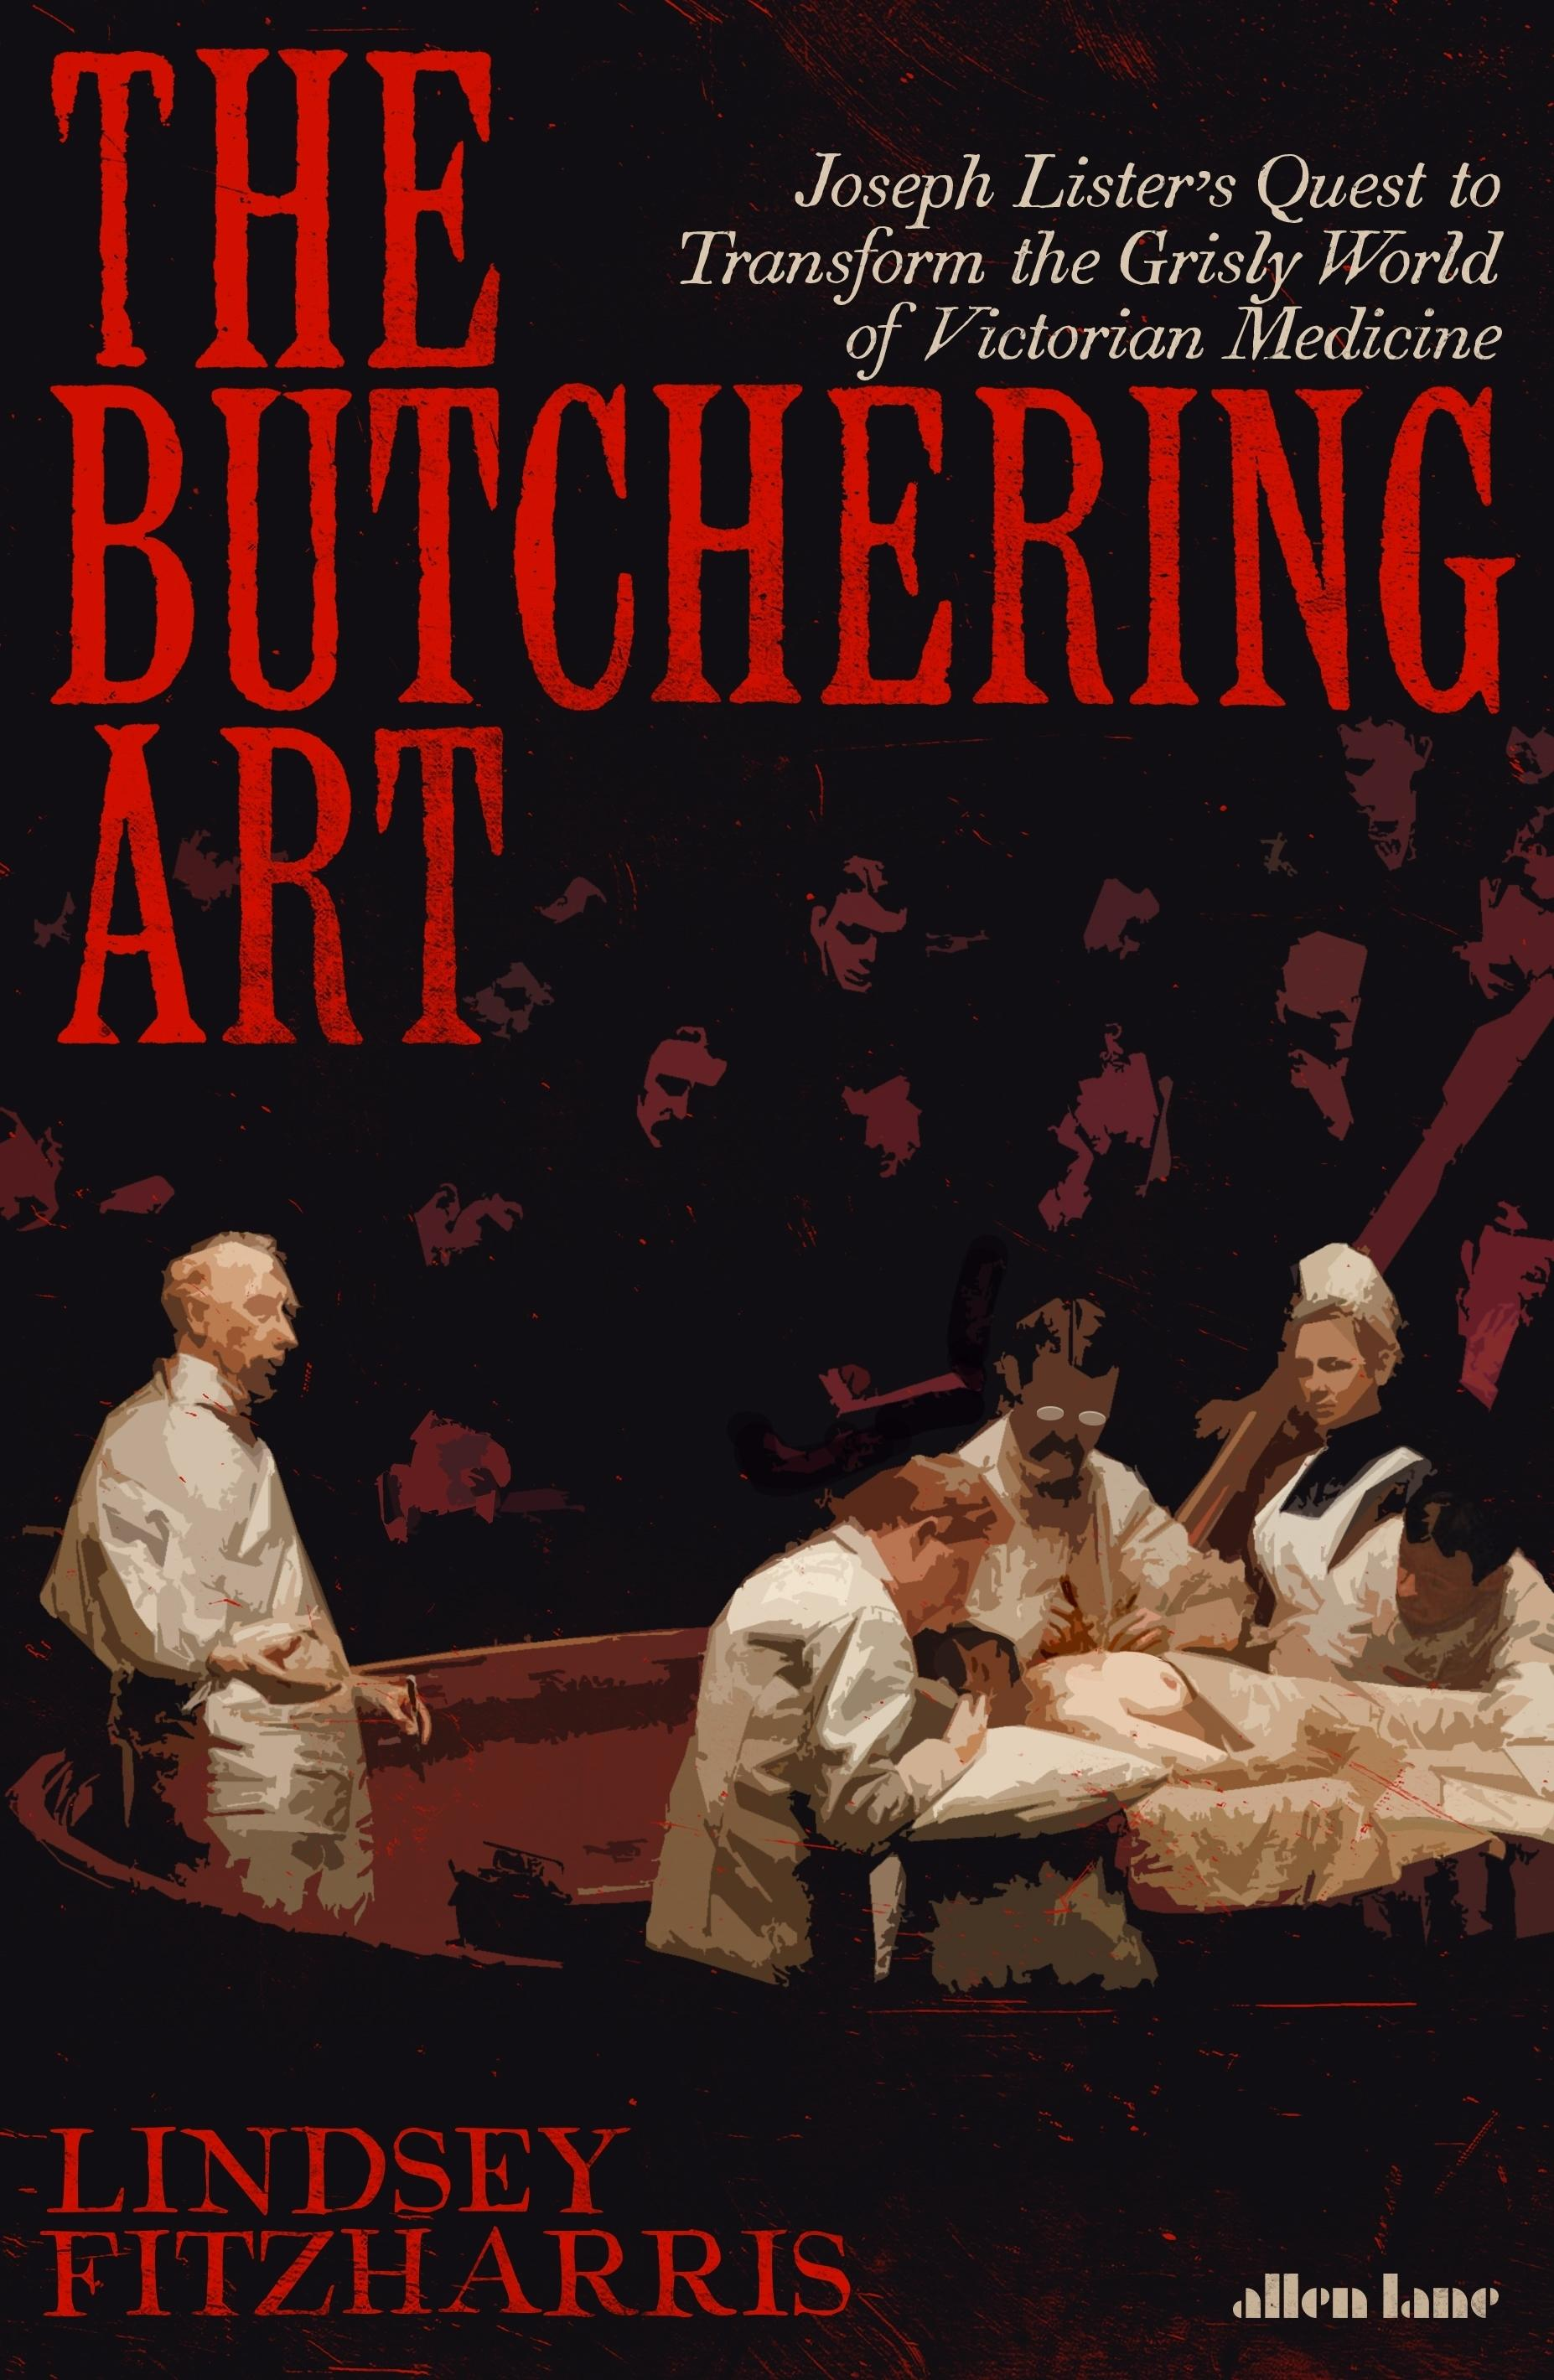 The Butchering Art: Joseph Lister's Quest to Transform the Grisly World ofVictorianMedicine